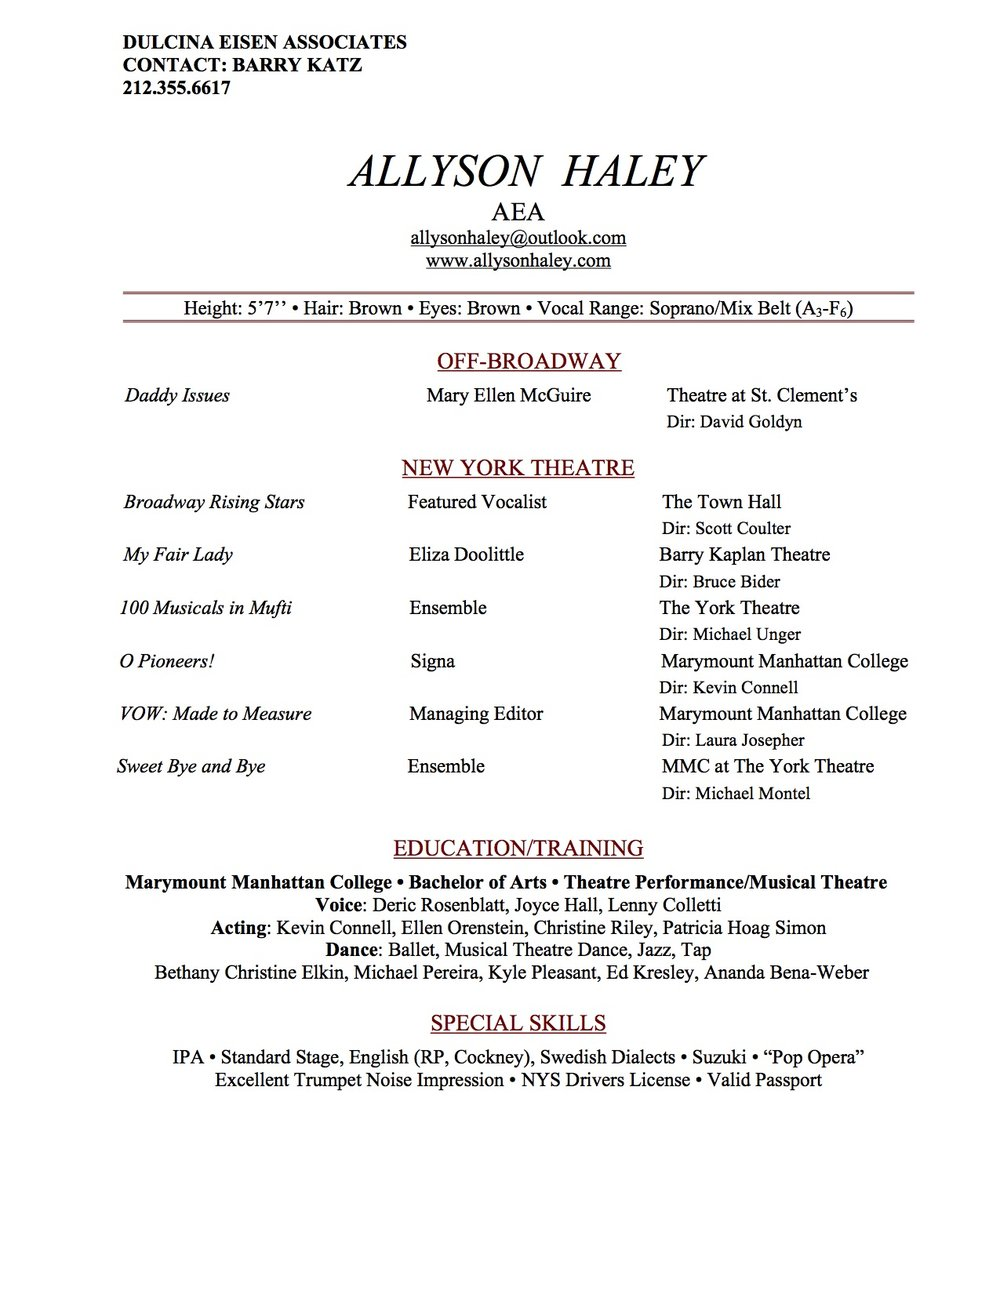 Allyson Haley Resume.jpg